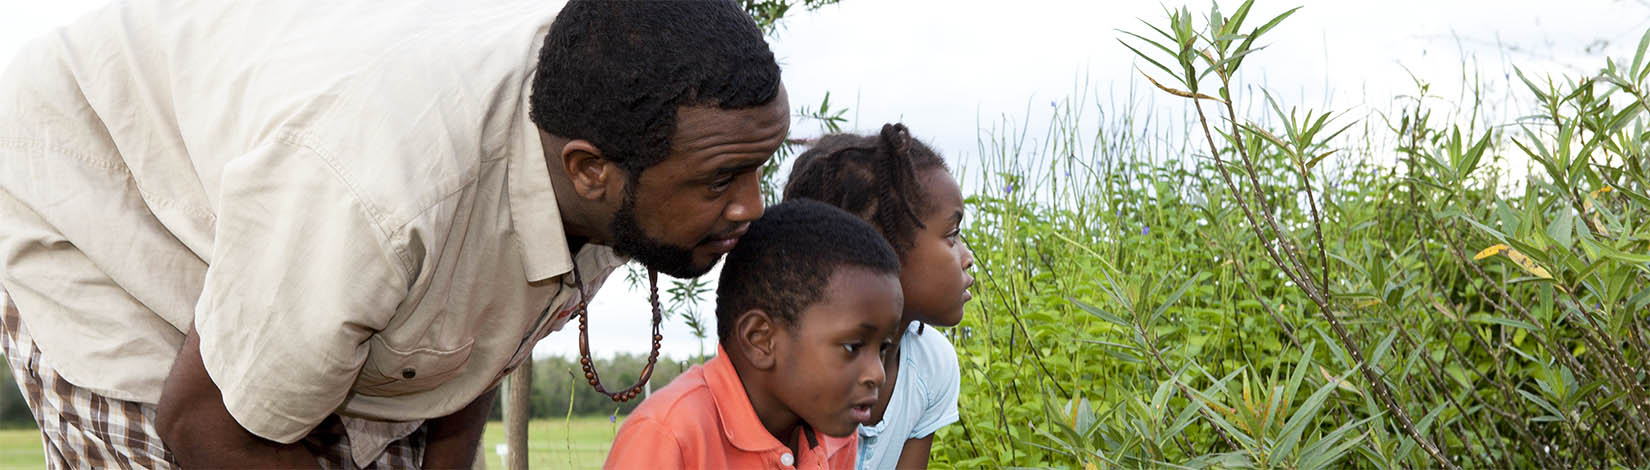 father and two children looking at plants